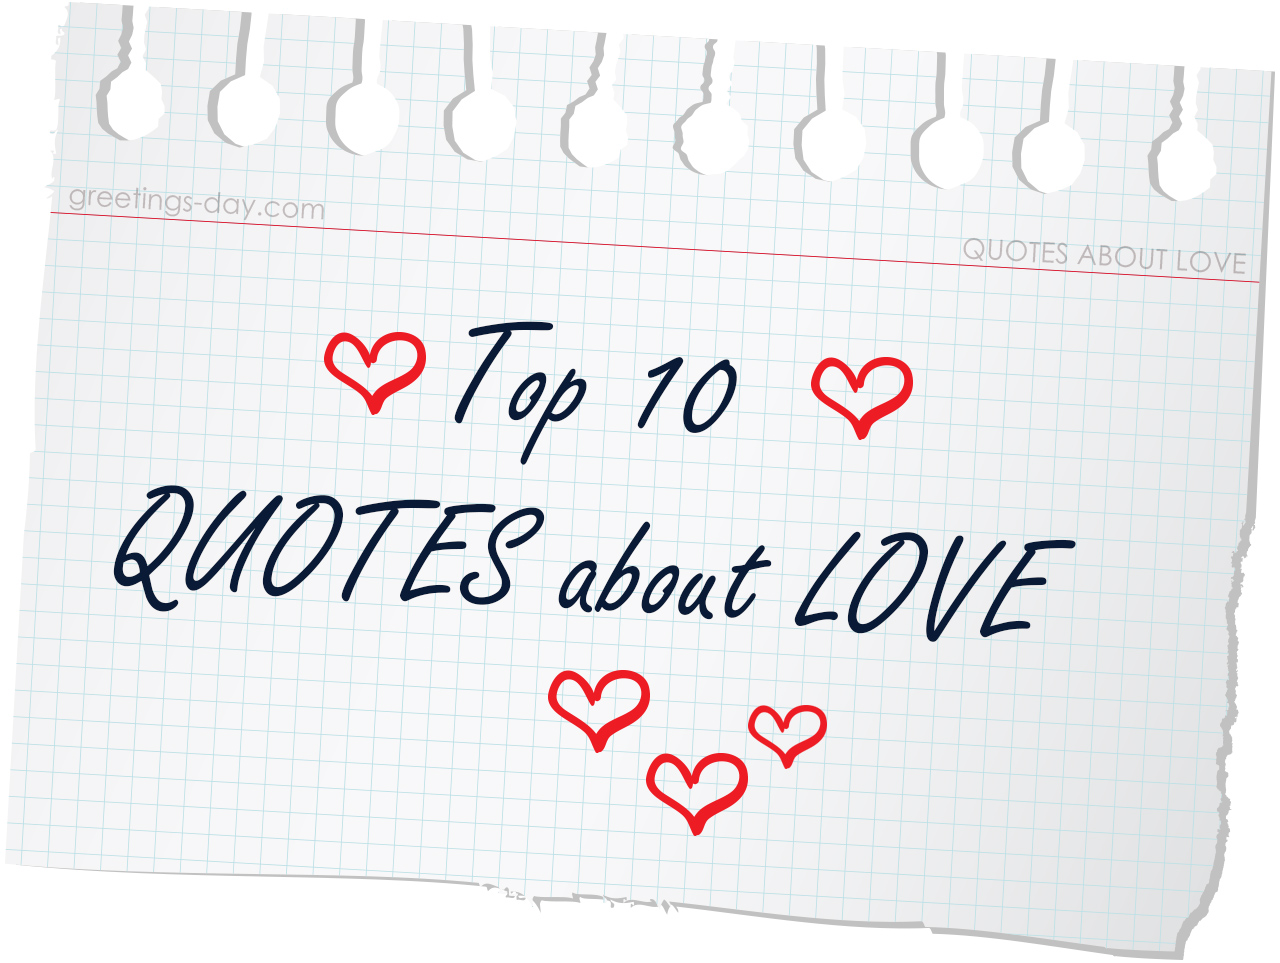 Top 10 Love Quotes Valentines Day ❤ Love Top10 Quotes For Her And Him.